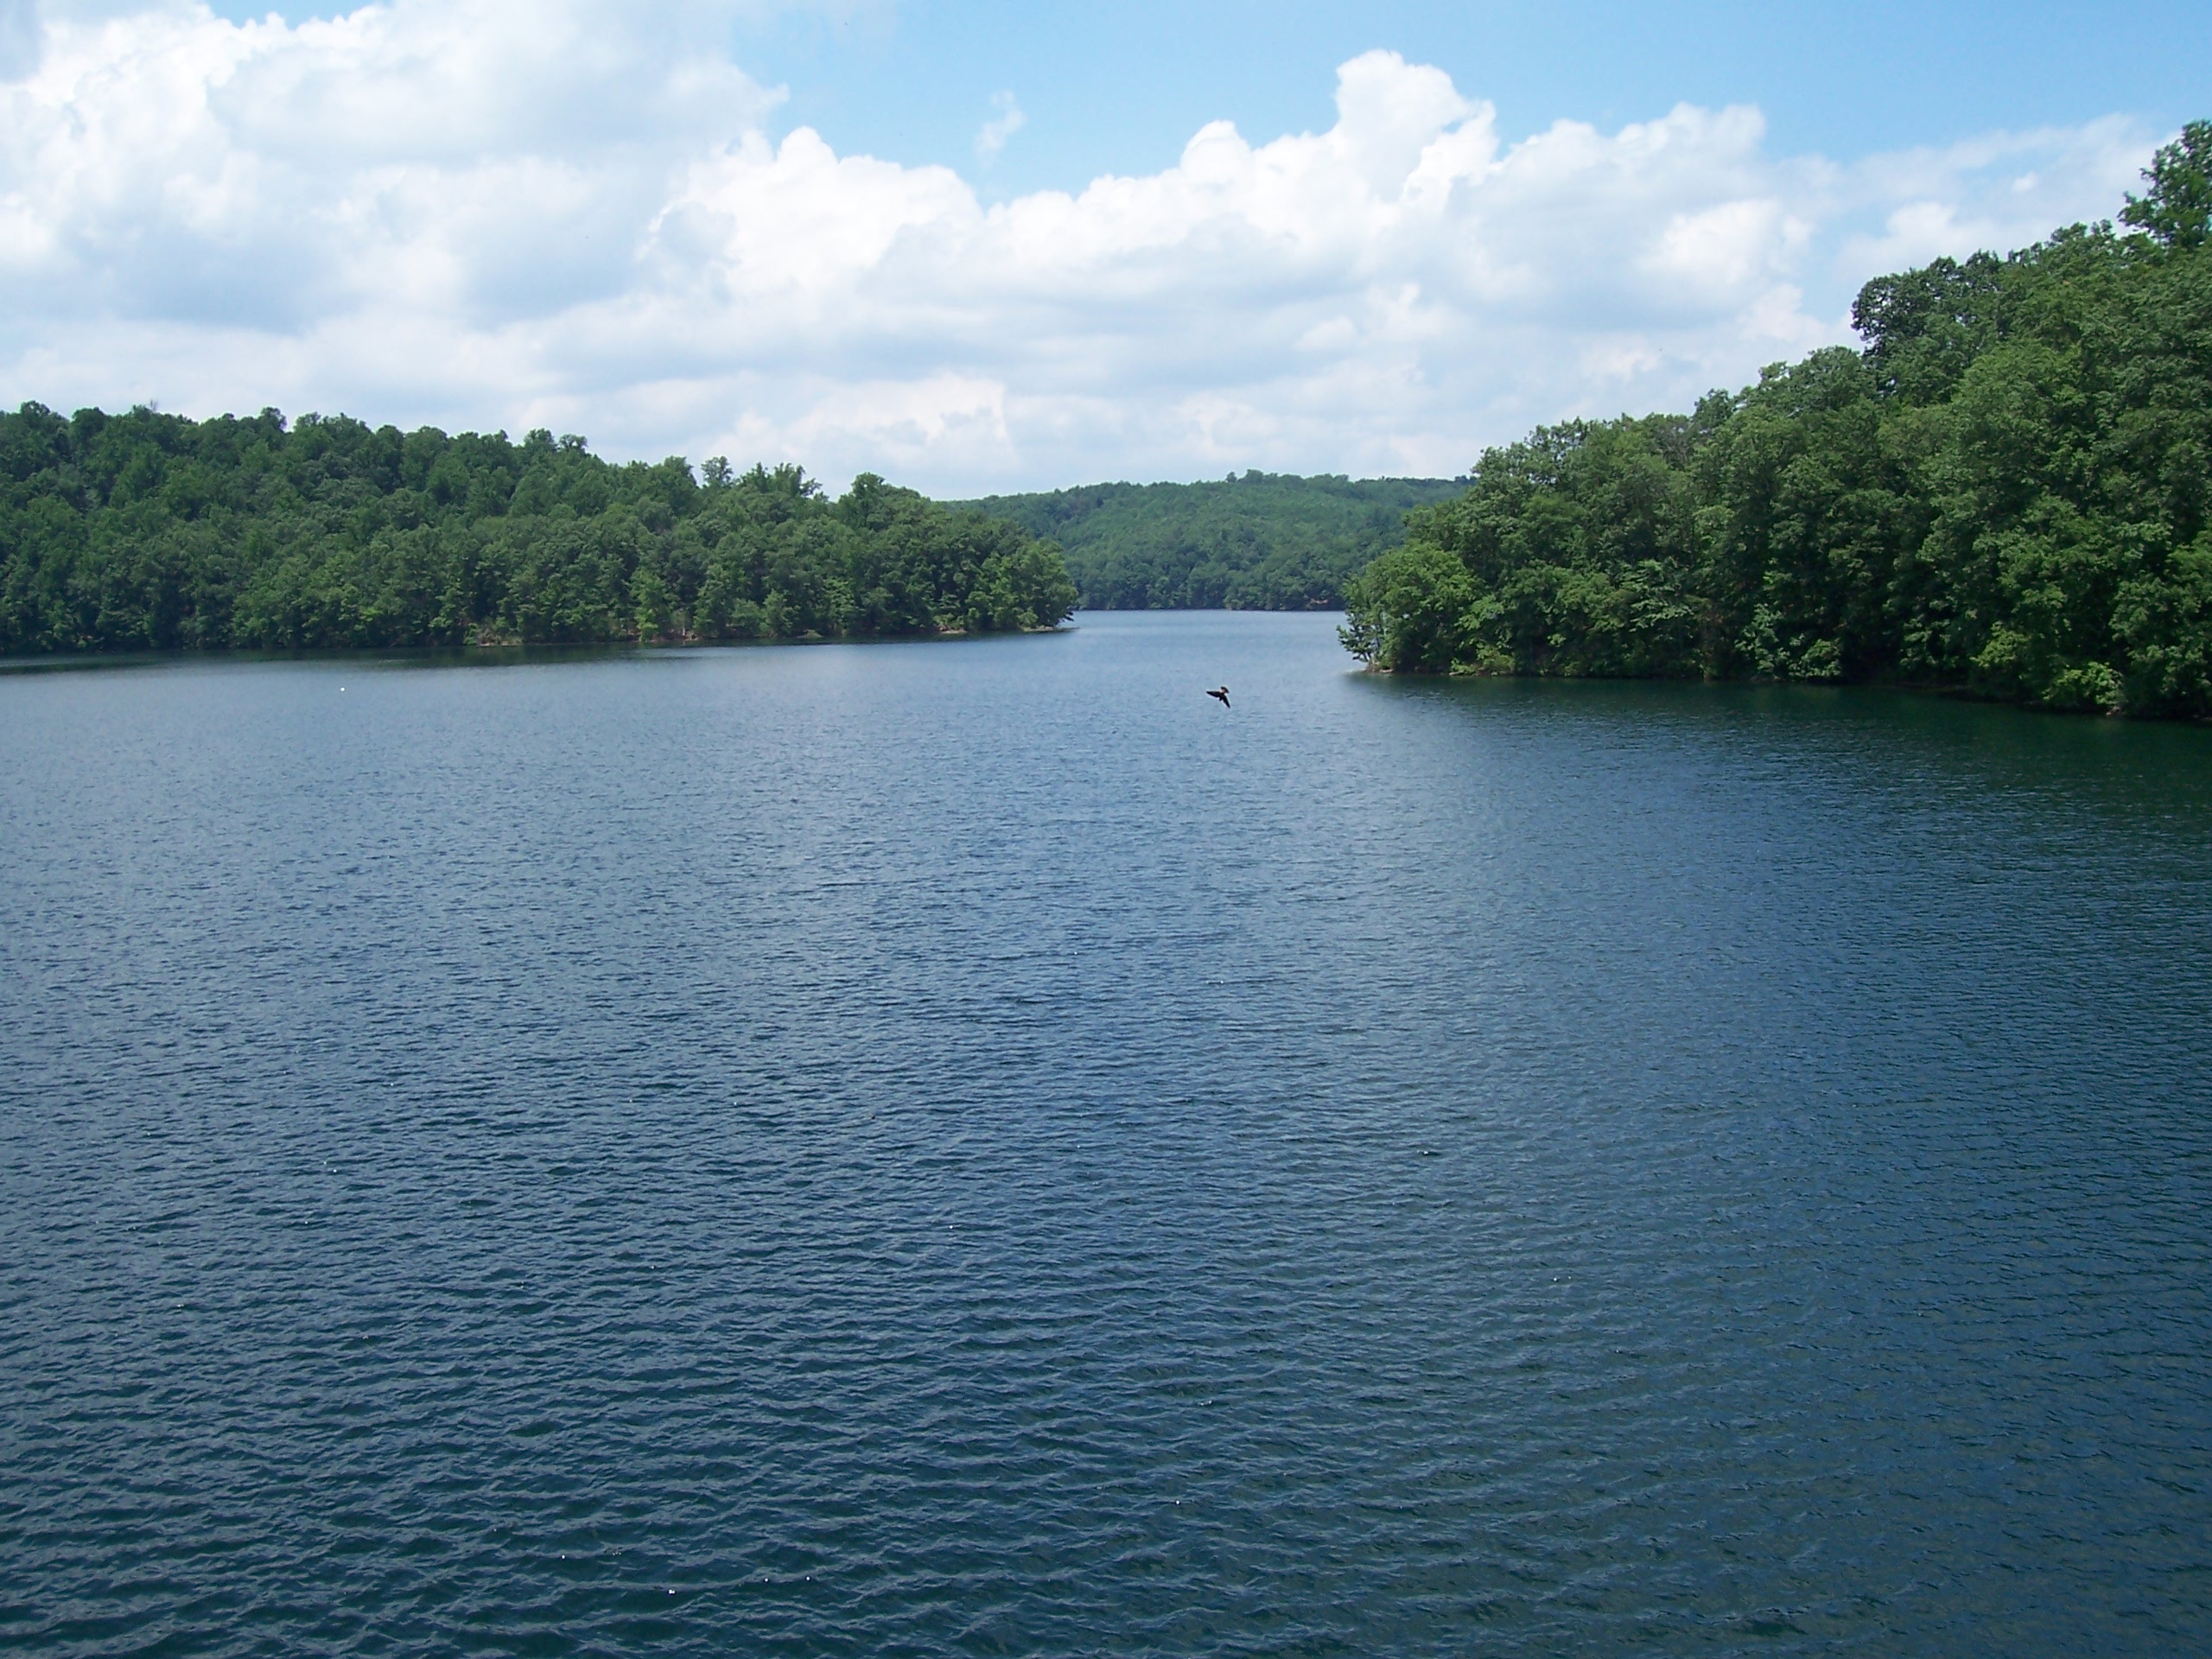 Picture of lake surface from Pretty Boy dam